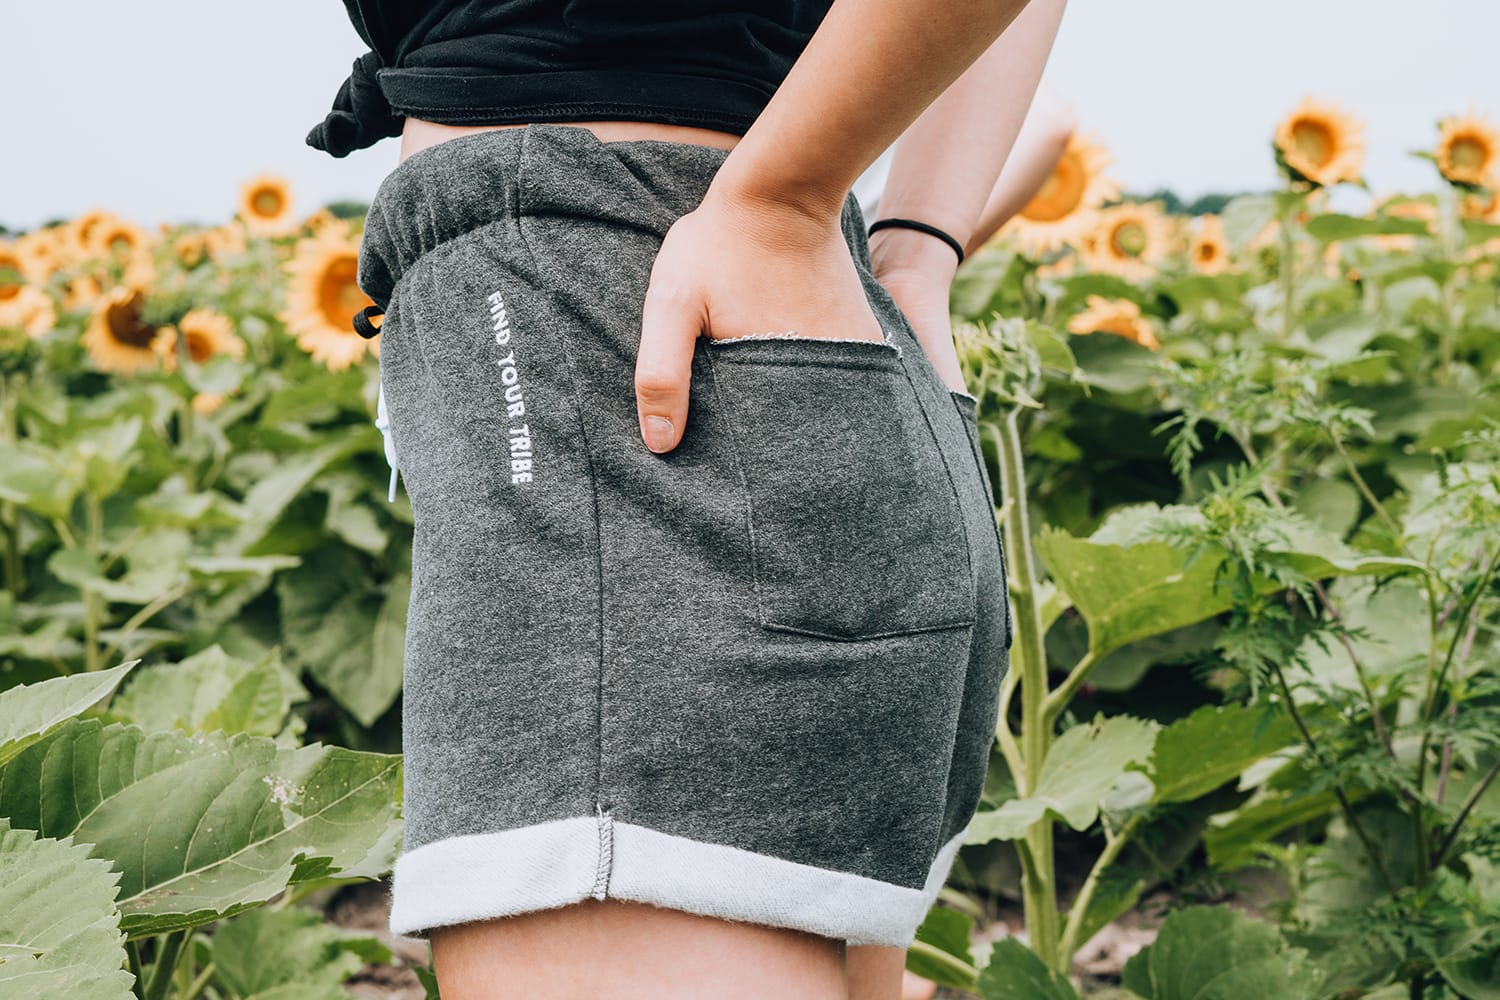 3 Easy Ways You Can Reduce Your Carbon Footprint - Woman wearing cotton shorts